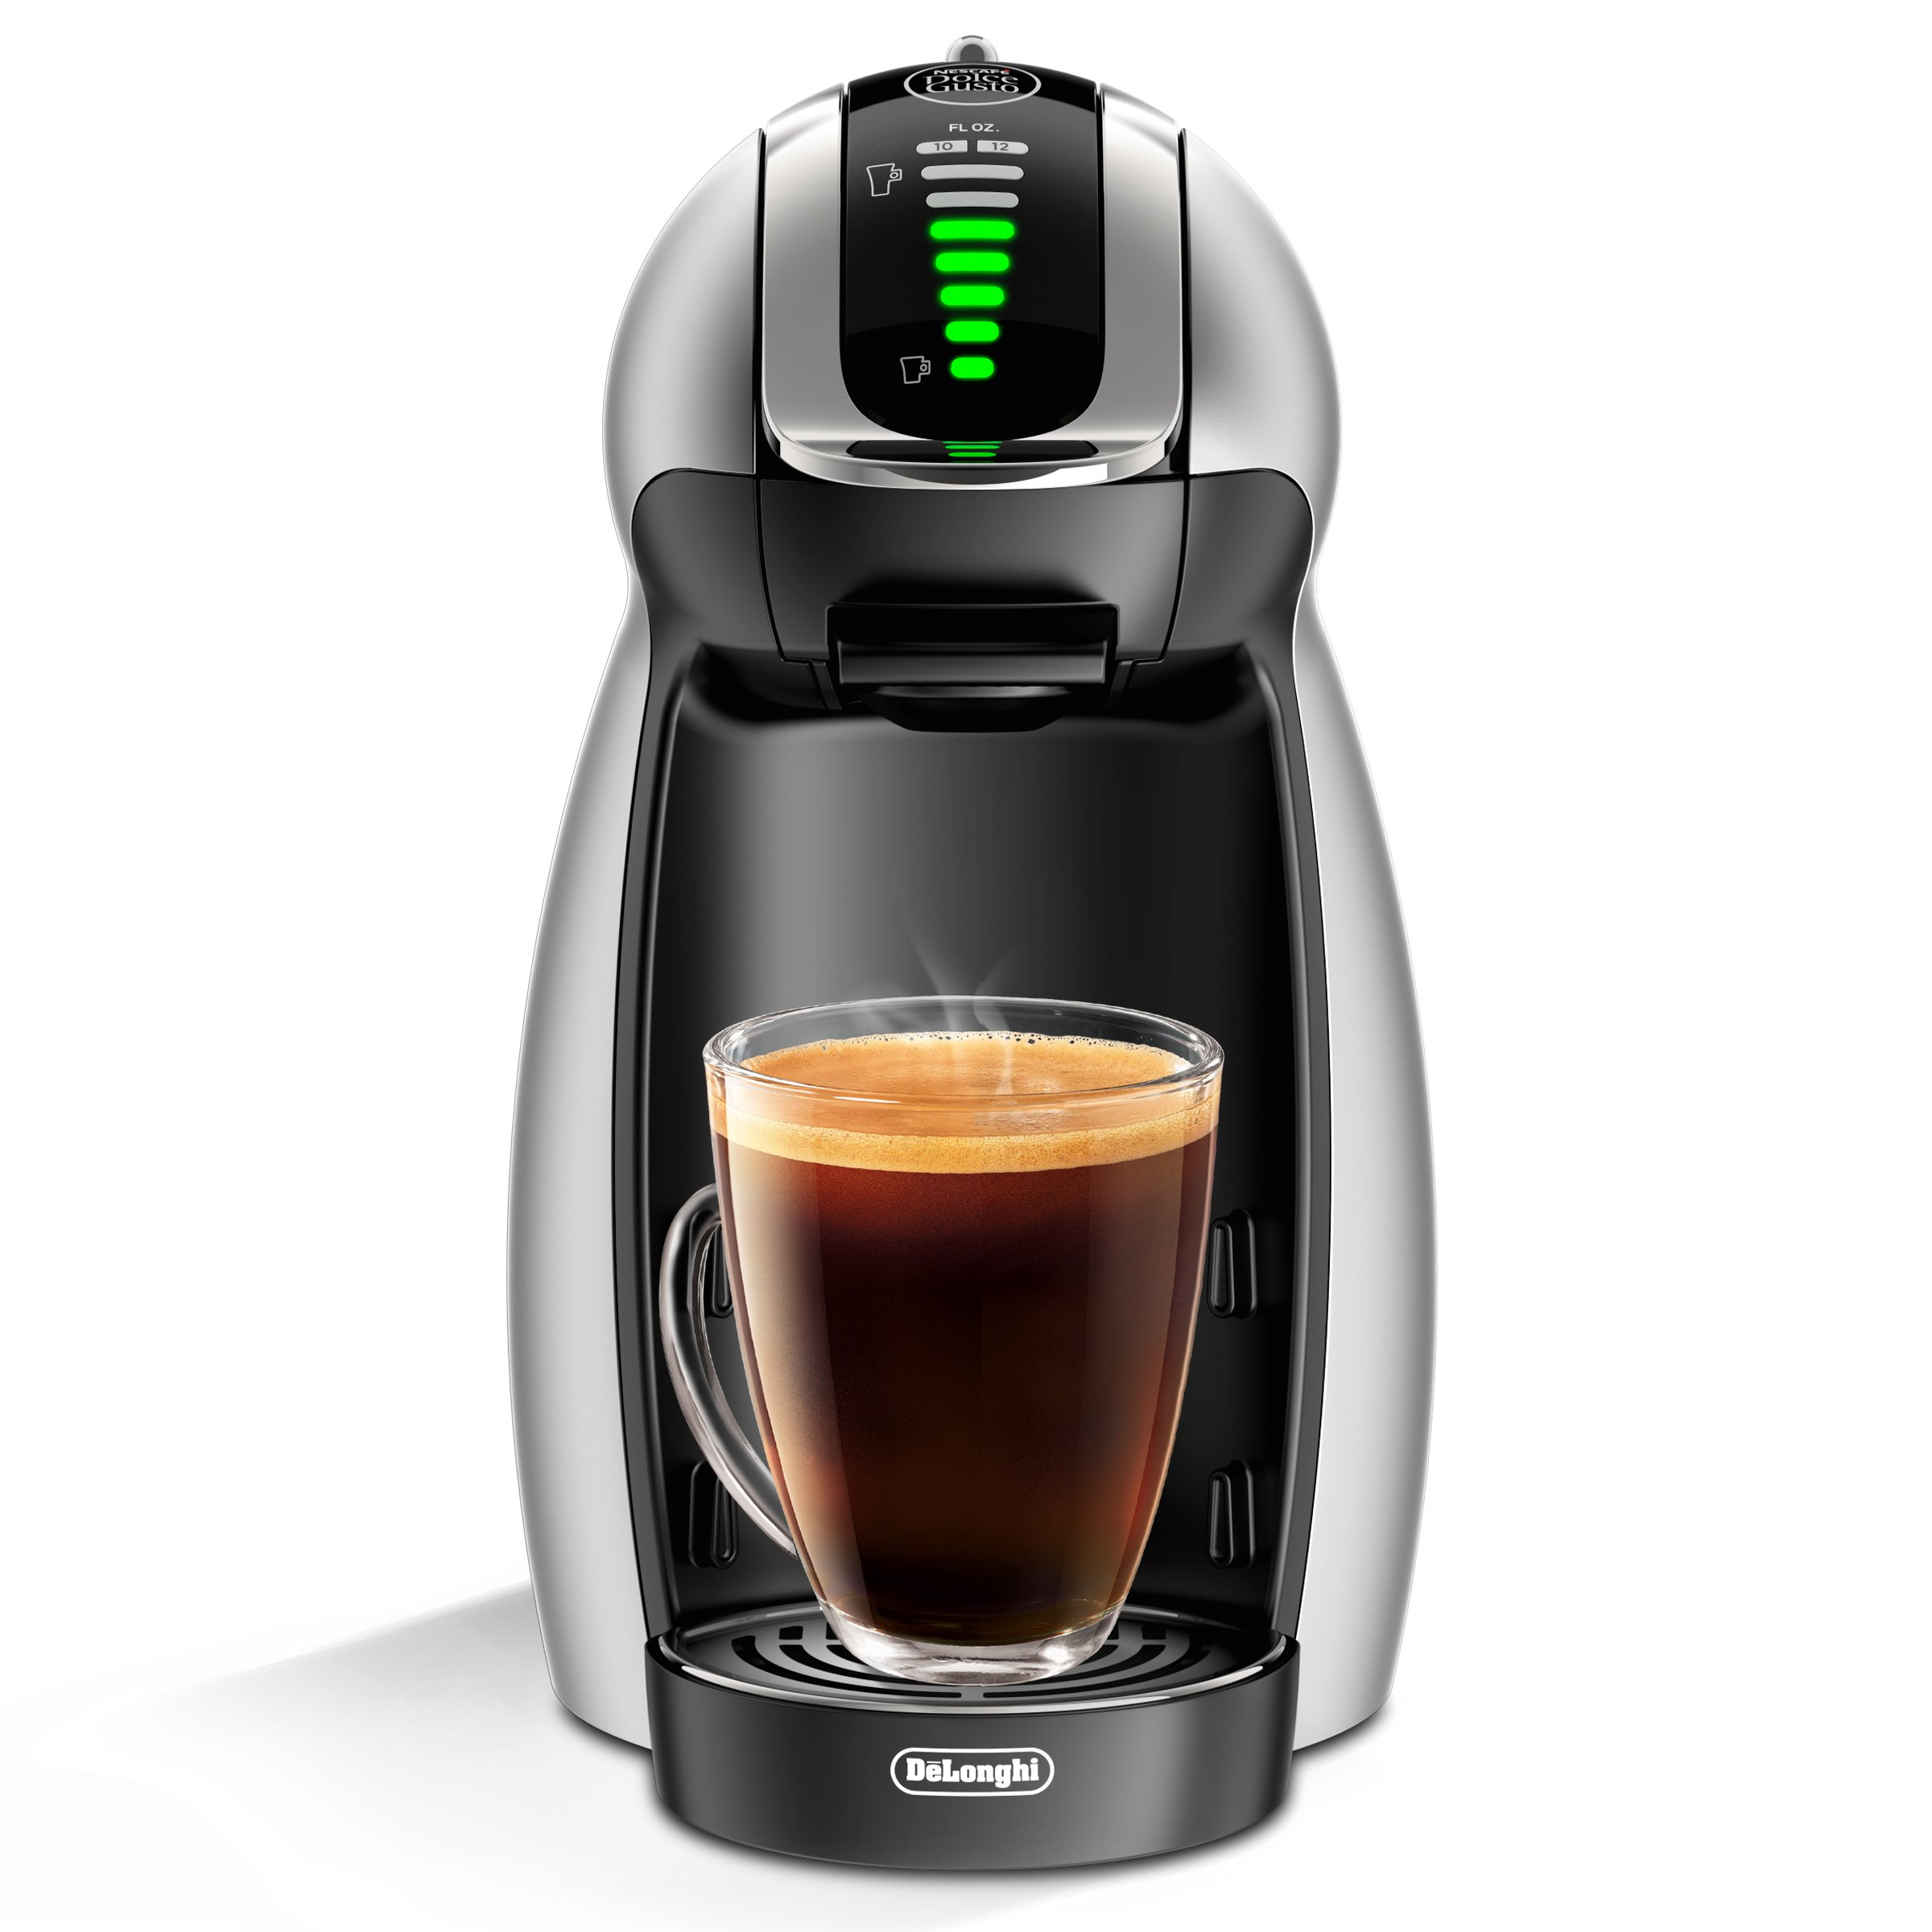 nescafe dolce gusto coffee sampler 30 capsules amazon. Black Bedroom Furniture Sets. Home Design Ideas